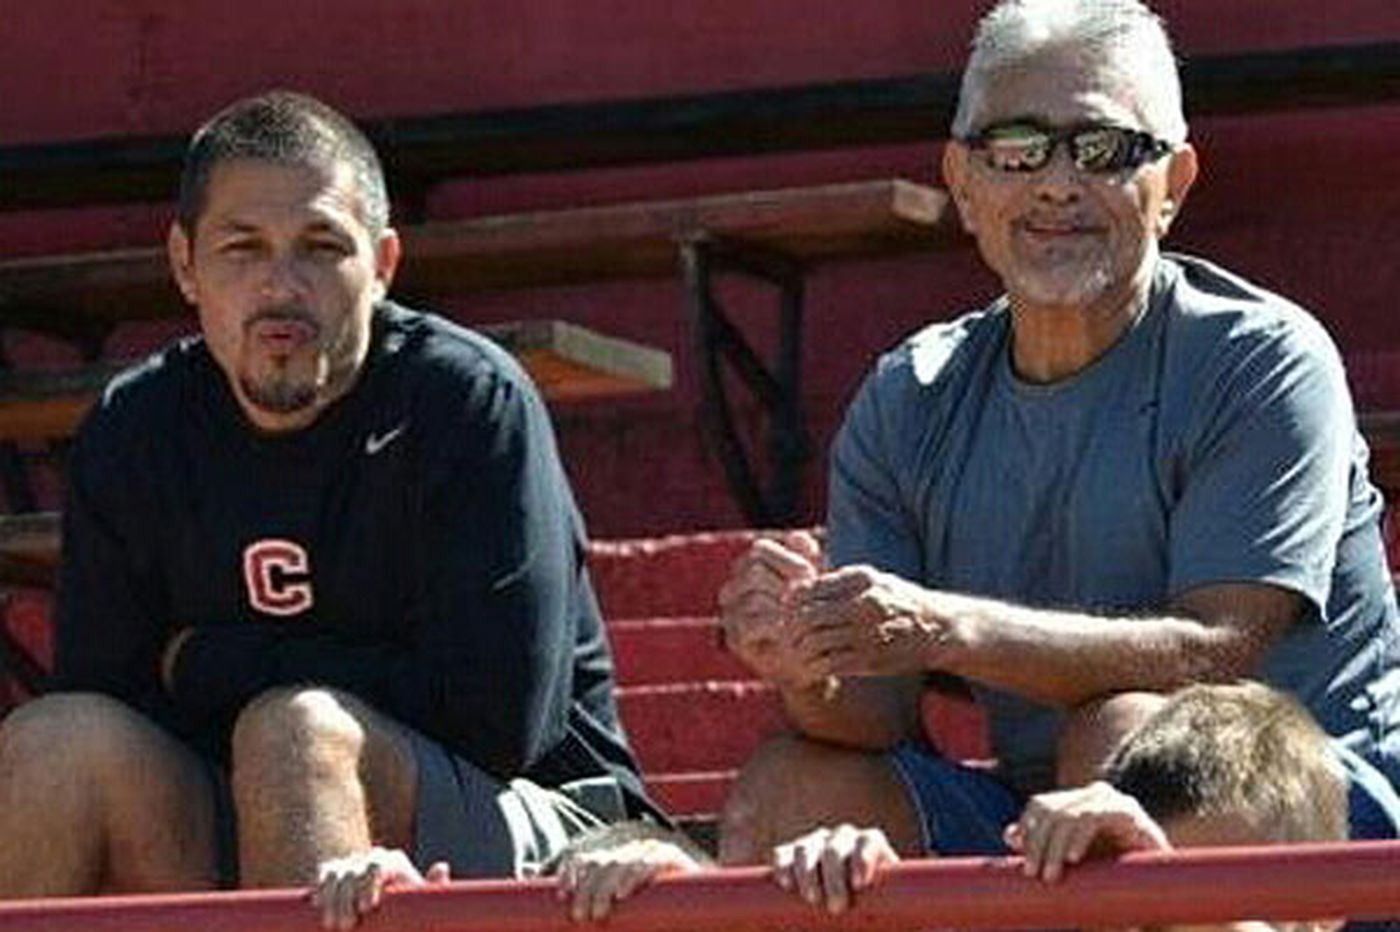 Coatesville coach donates liver to his father